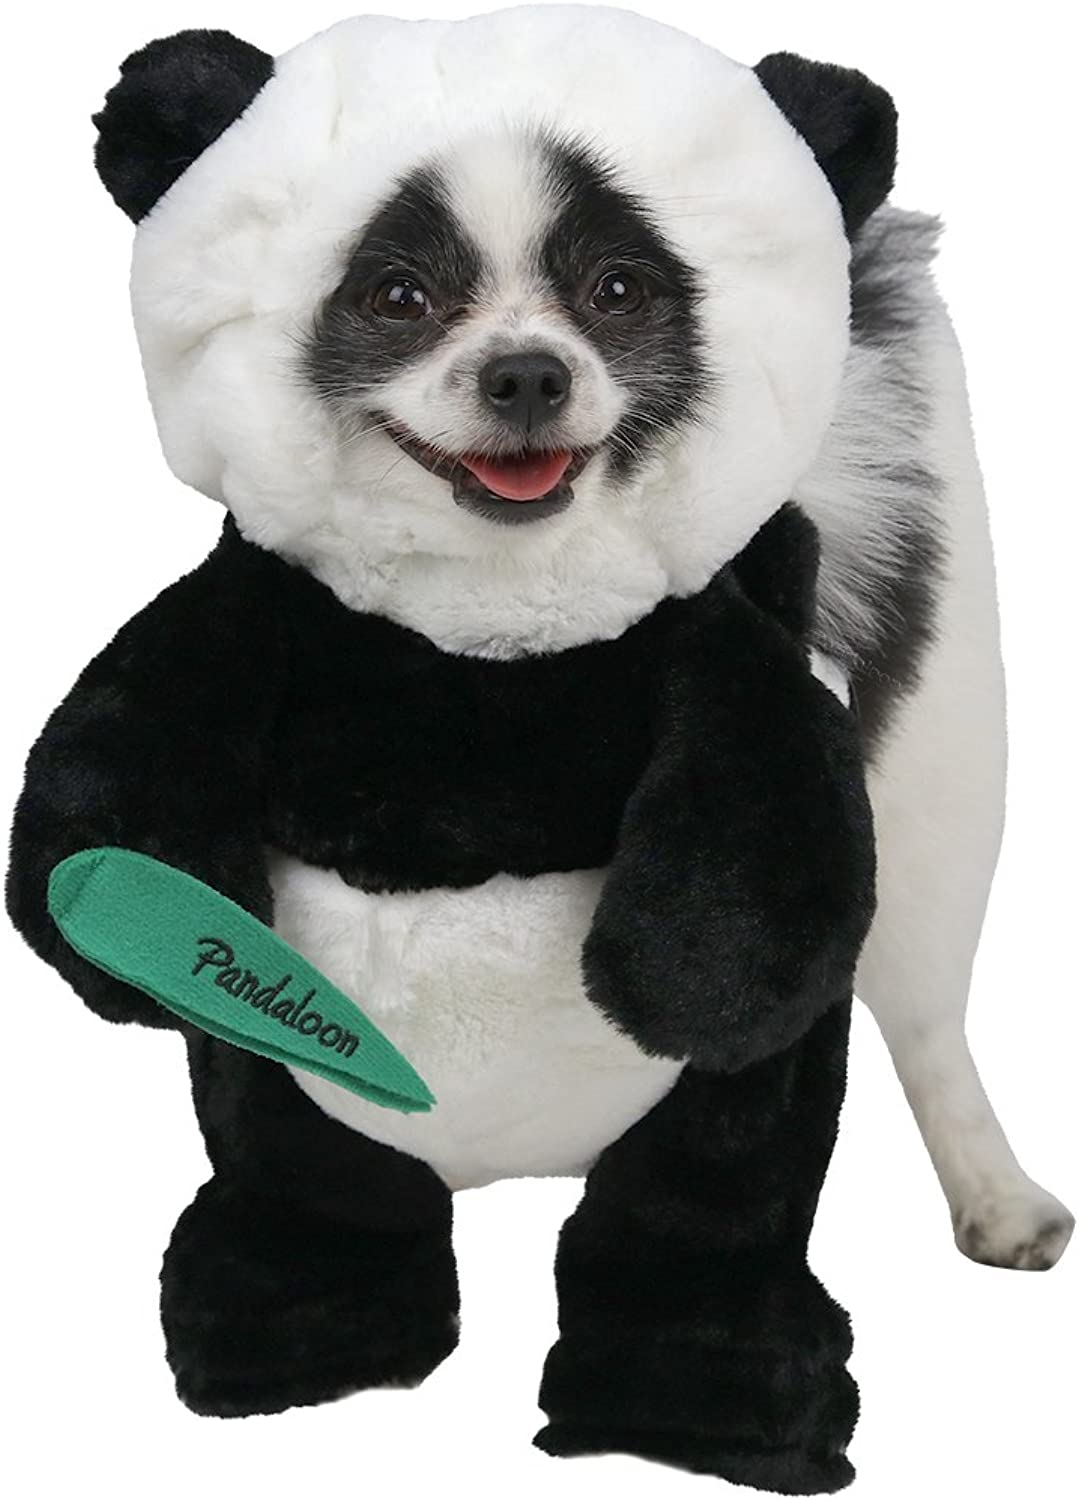 Pandaloon Panda Puppy Dog and Pet Costume Set  AS SEEN ON Shark Tank  Walking Teddy Bear with Arms